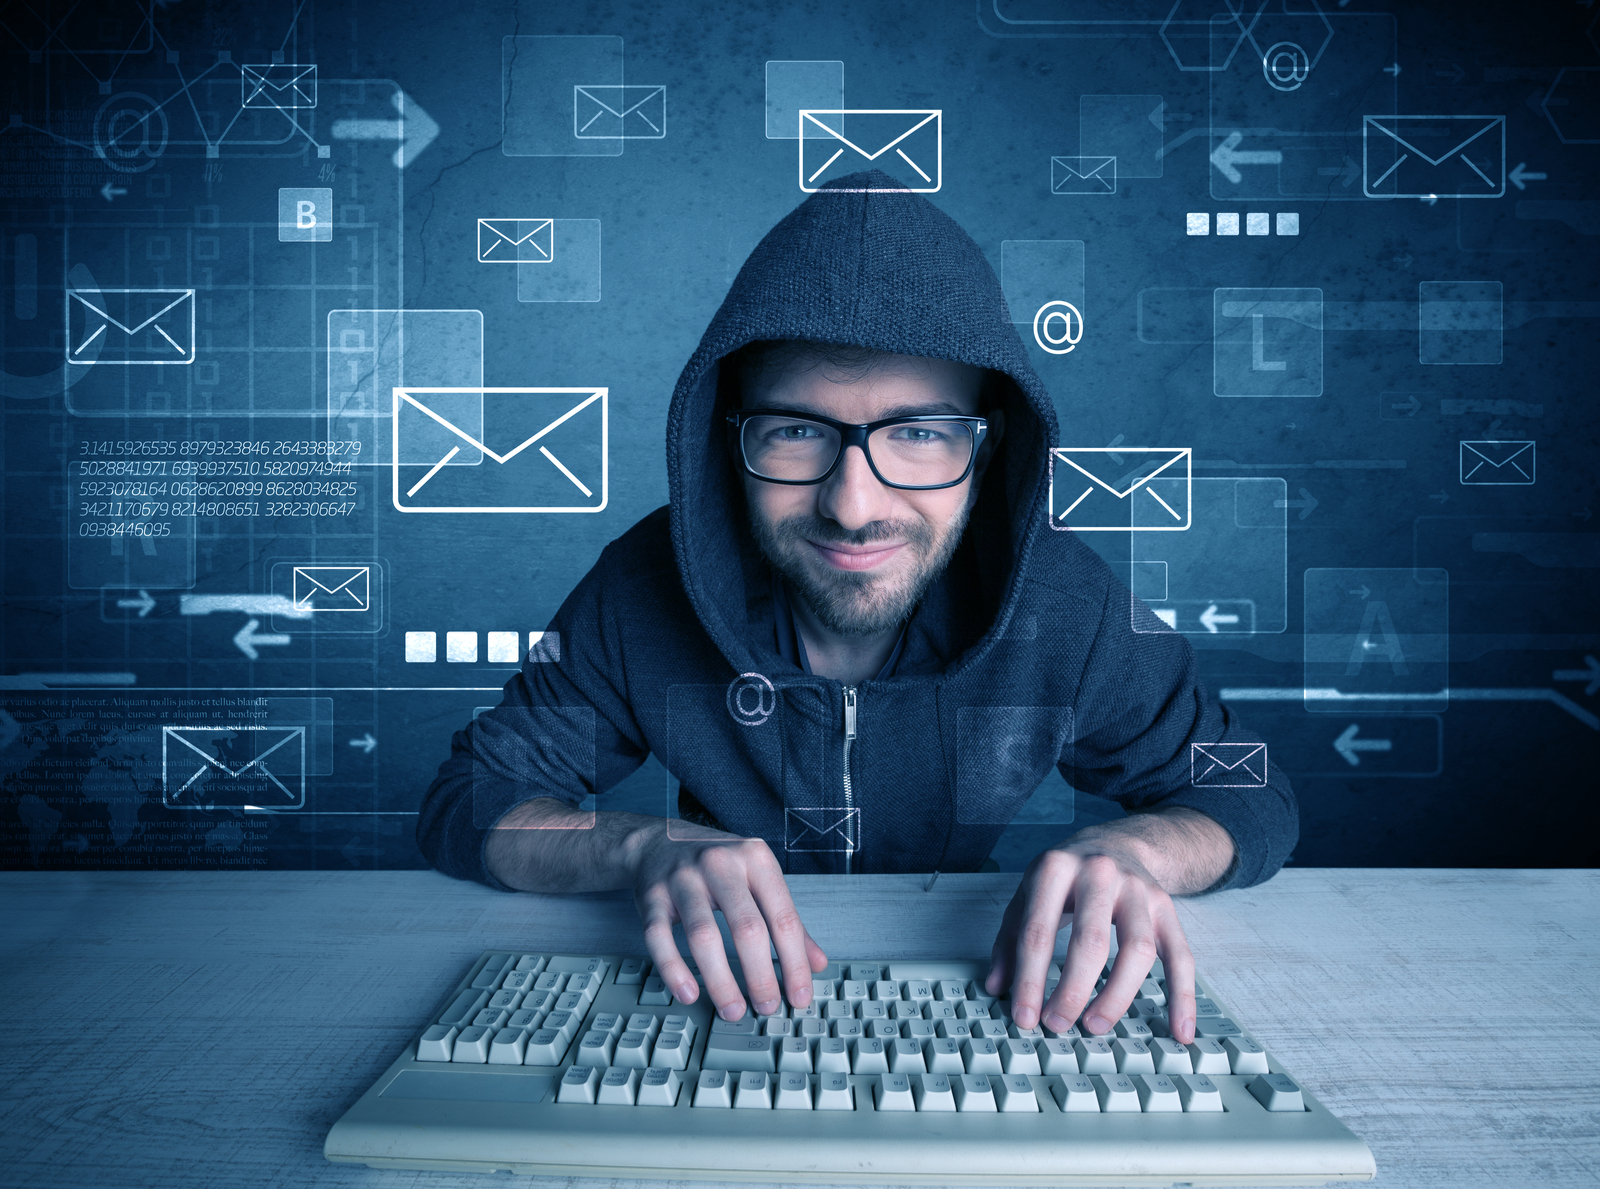 Man using Computer | How To Pick An Email Marketing Service That's Right For You